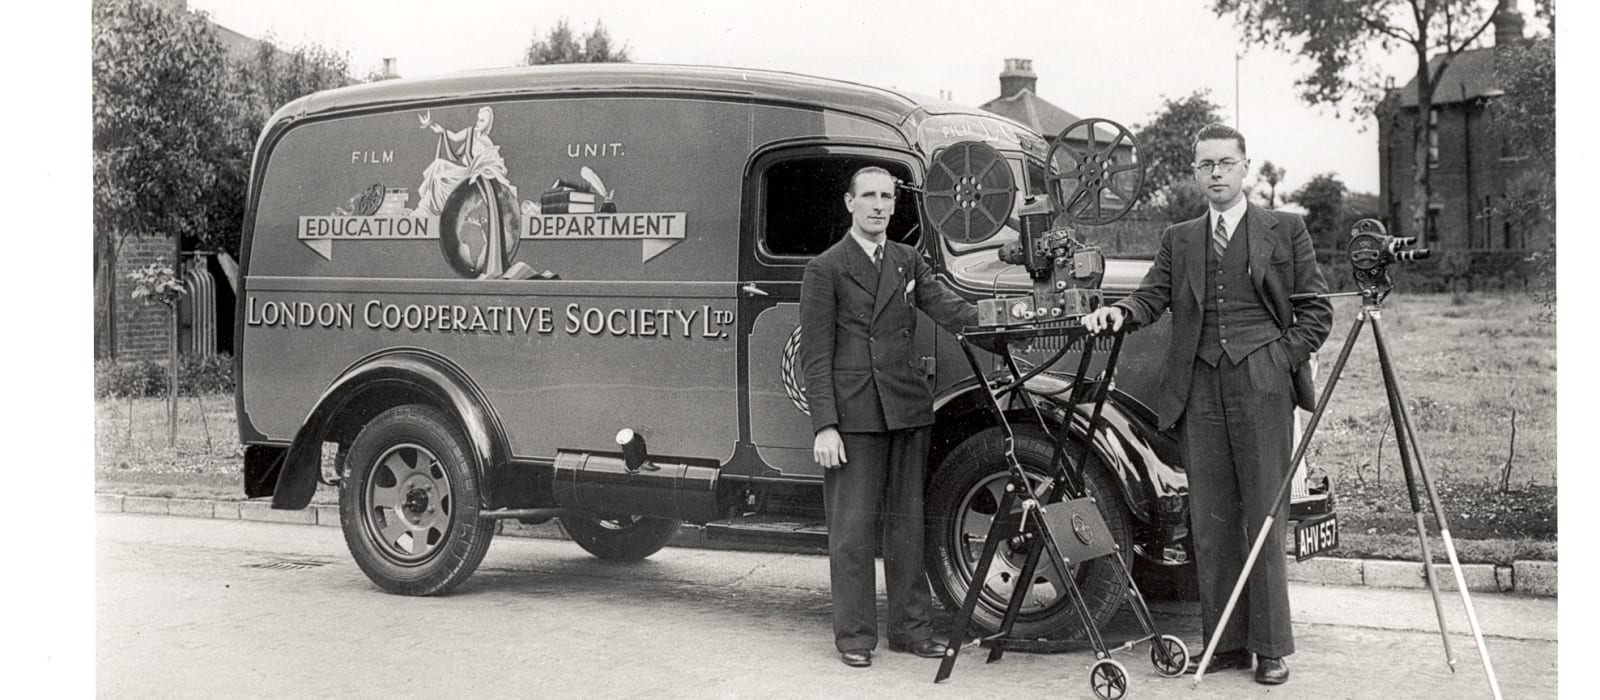 Image of the Co-operative education film department van and two men with film camera in the 1940s.